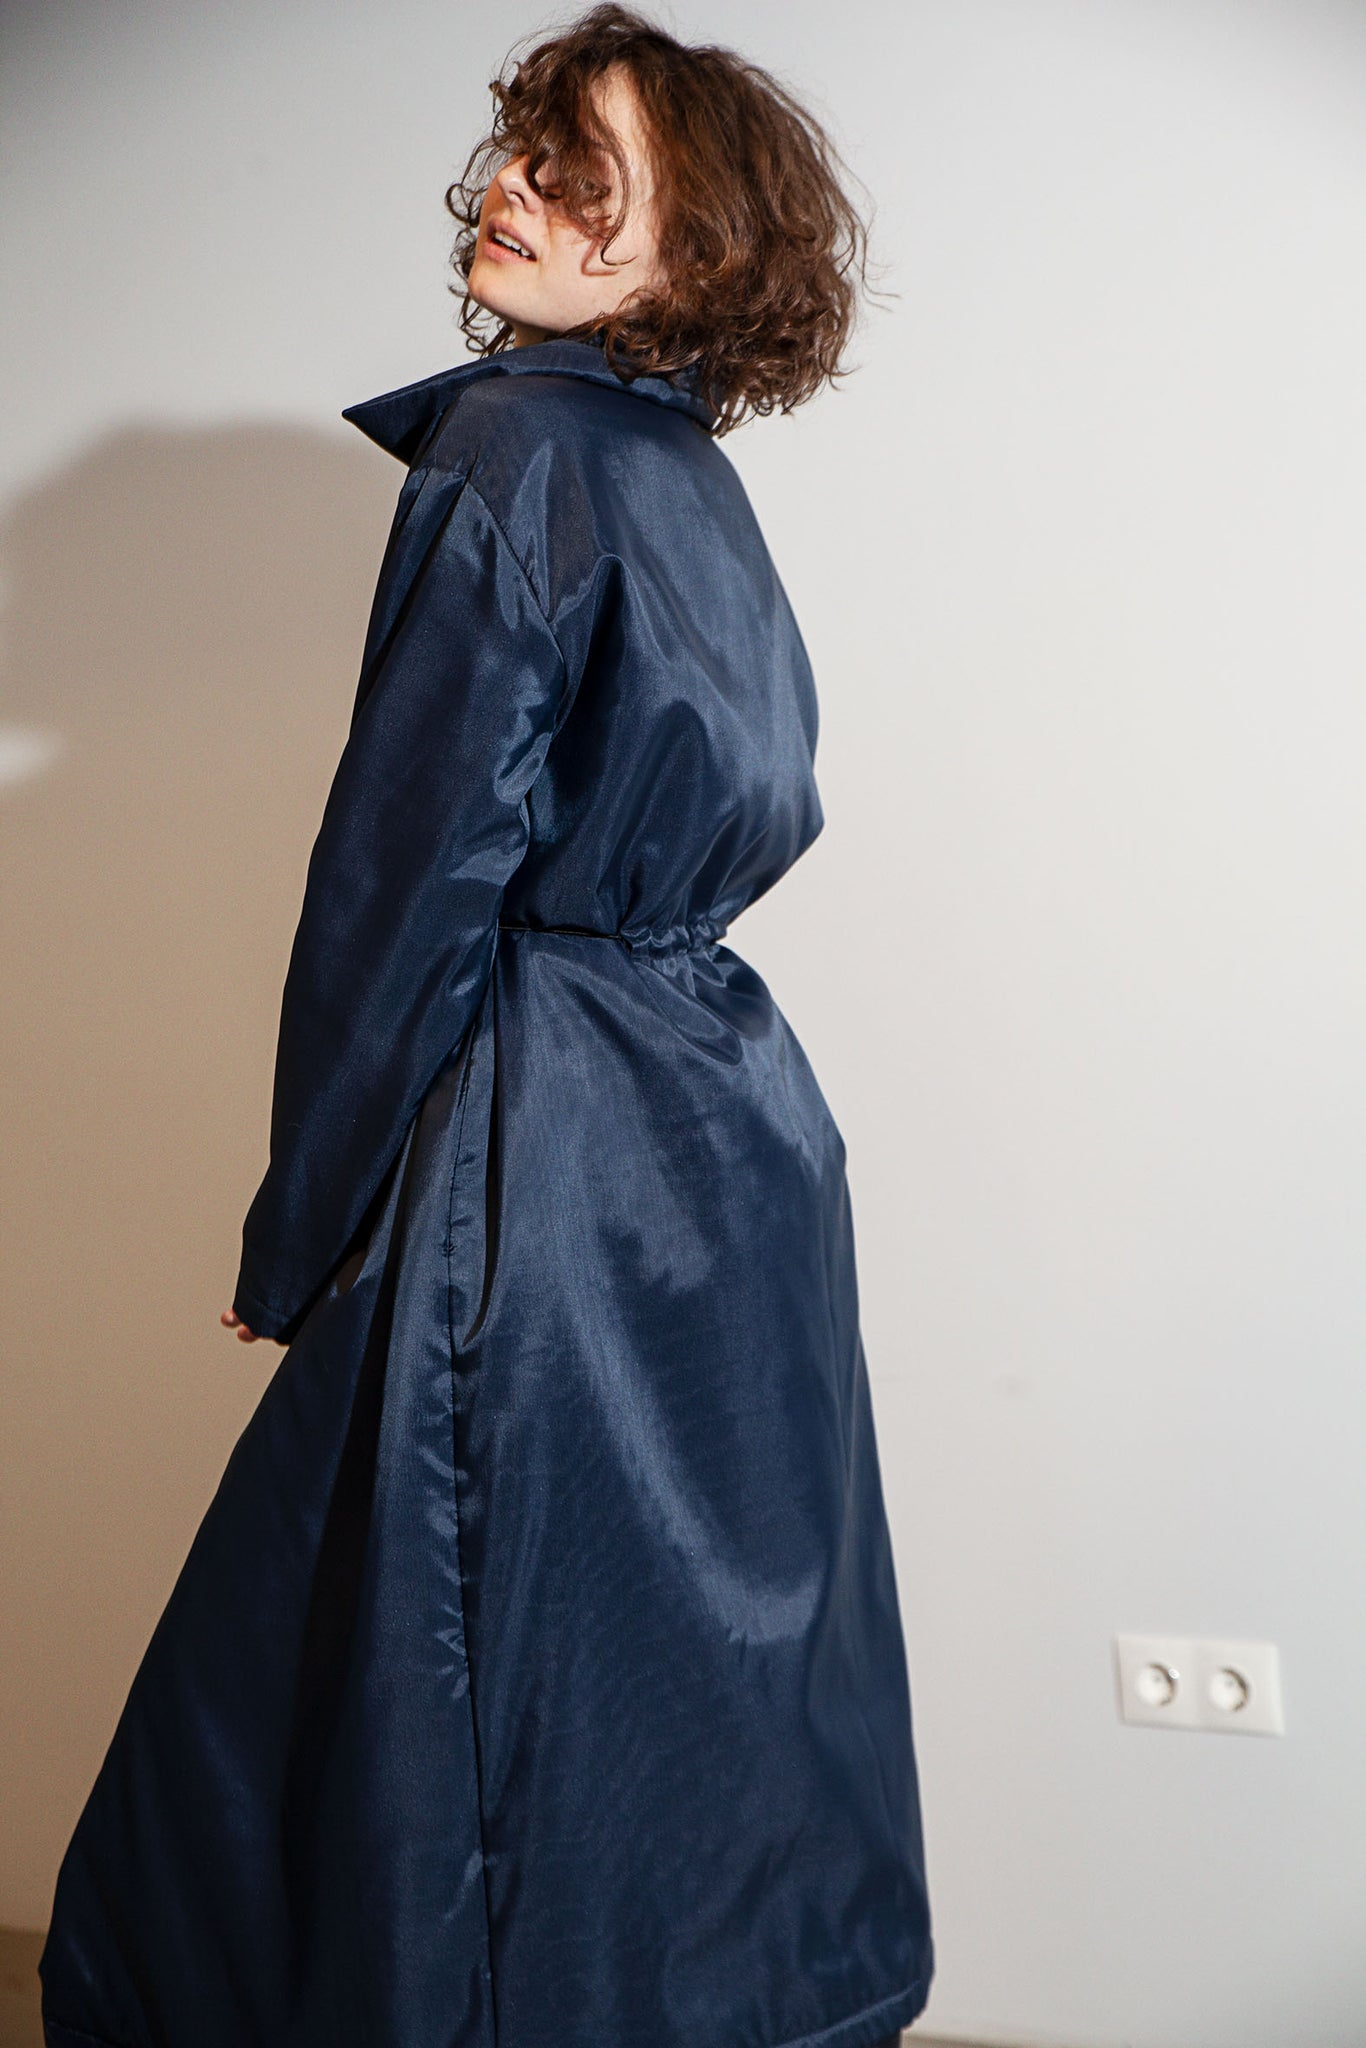 Long puffy coat in dark blue